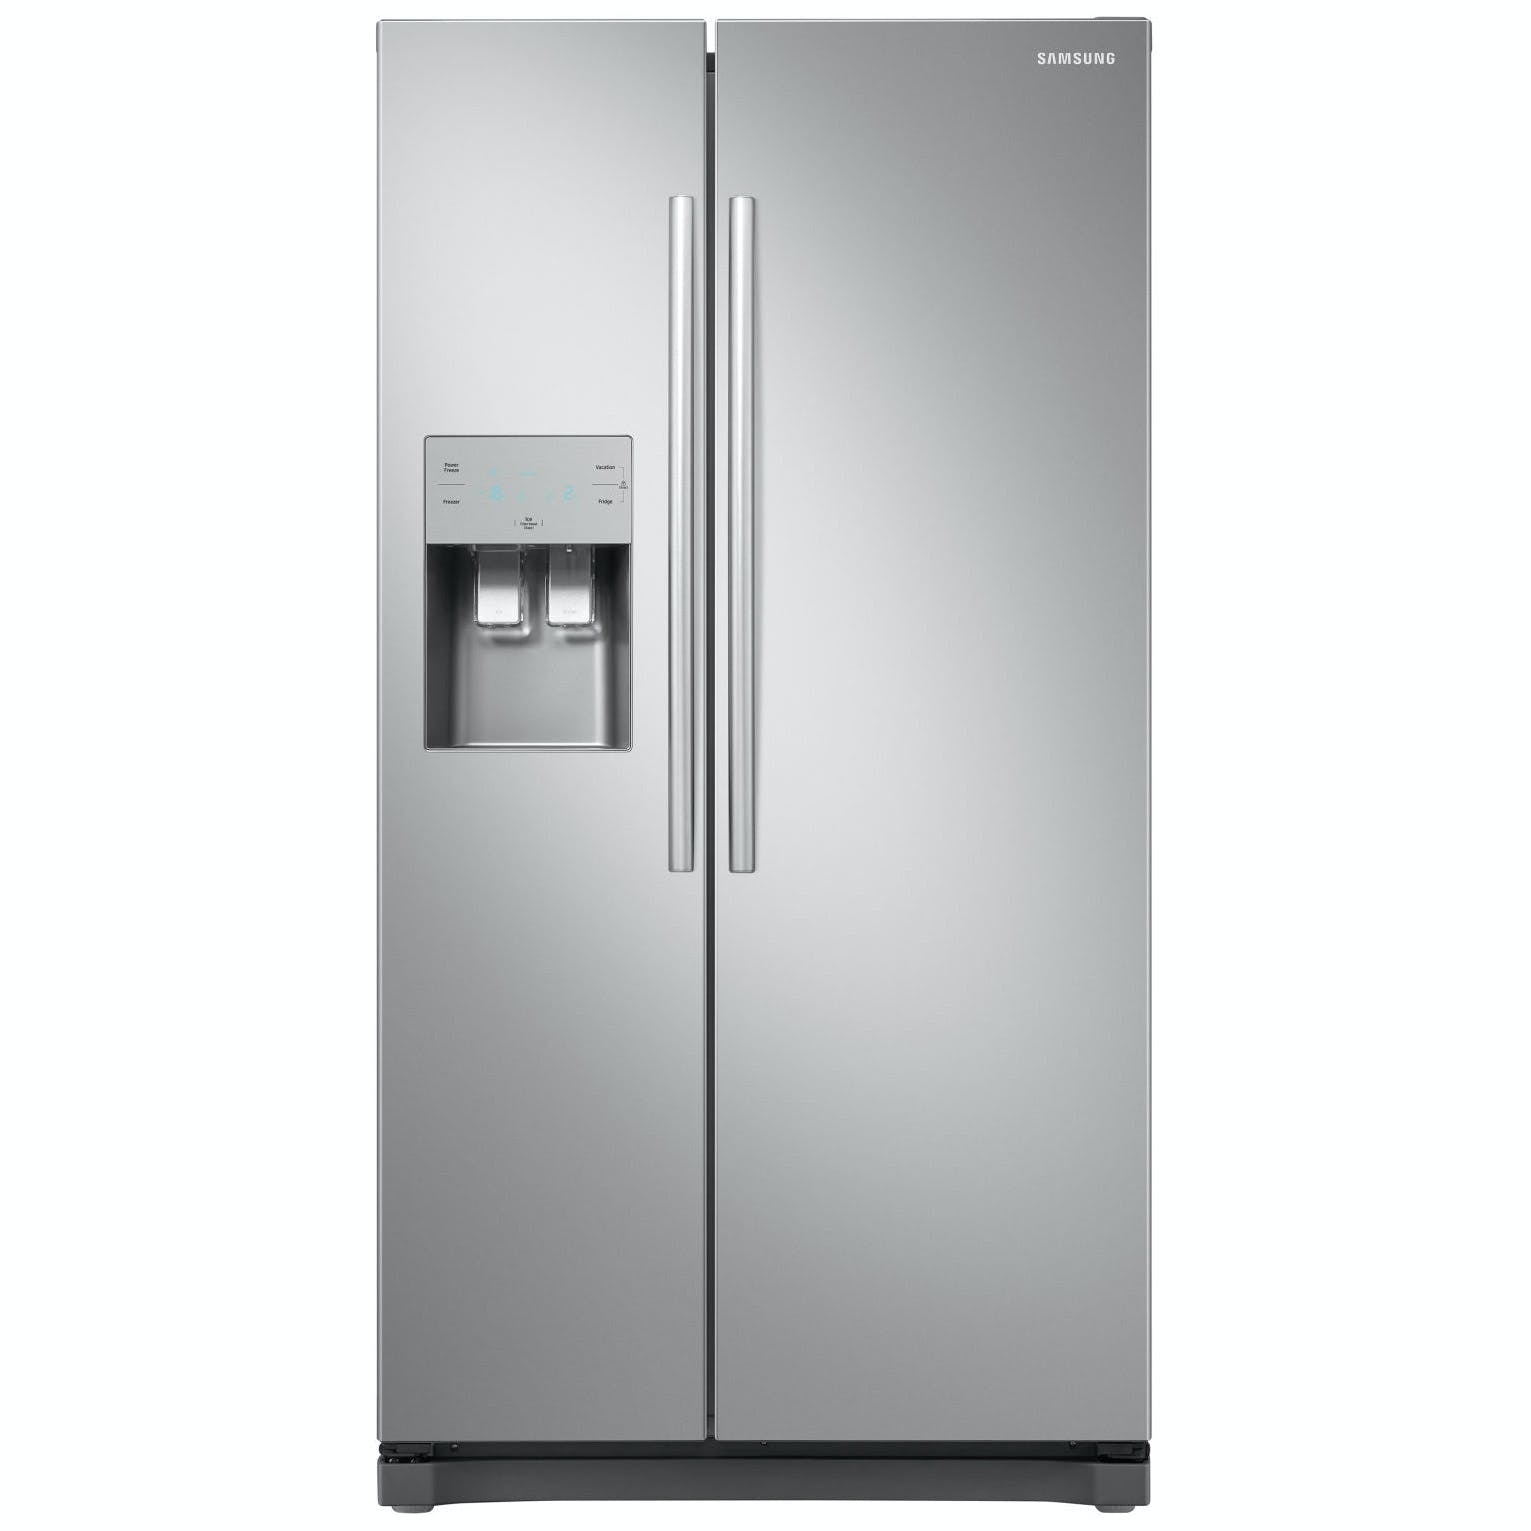 Samsung RS50N3513SL American Fridge Freezer in Graphite Ice & Water 1 8m A+